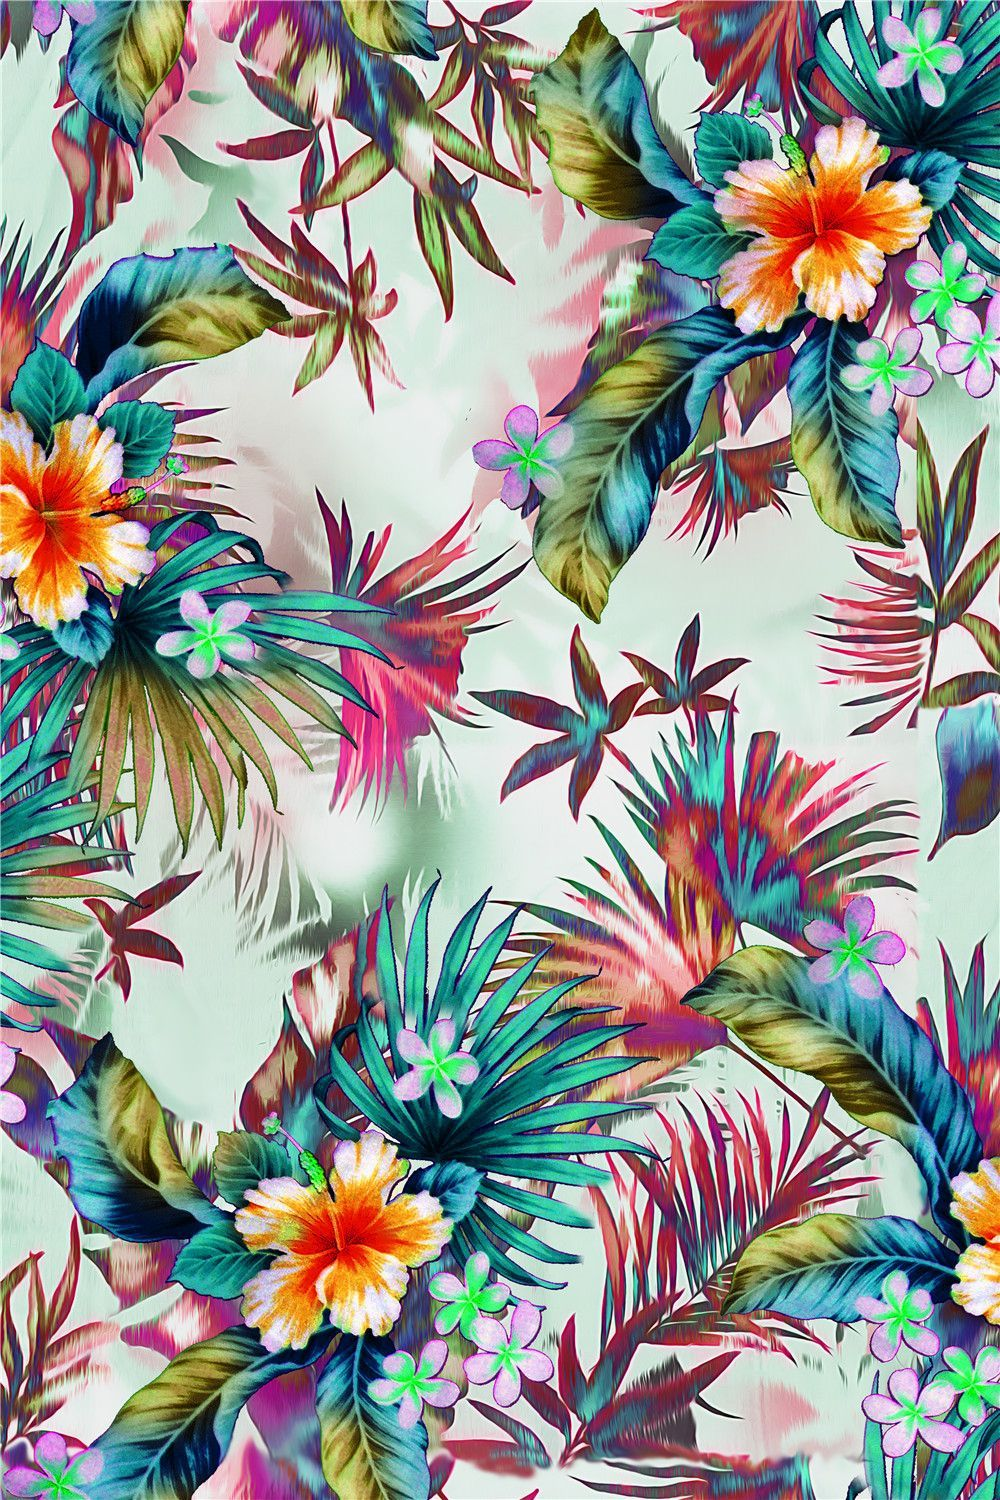 digital print floral tropical flower prints patterns background textile backgrounds designs printable pattern painting clipart decoupage flowers animated colourful 3d